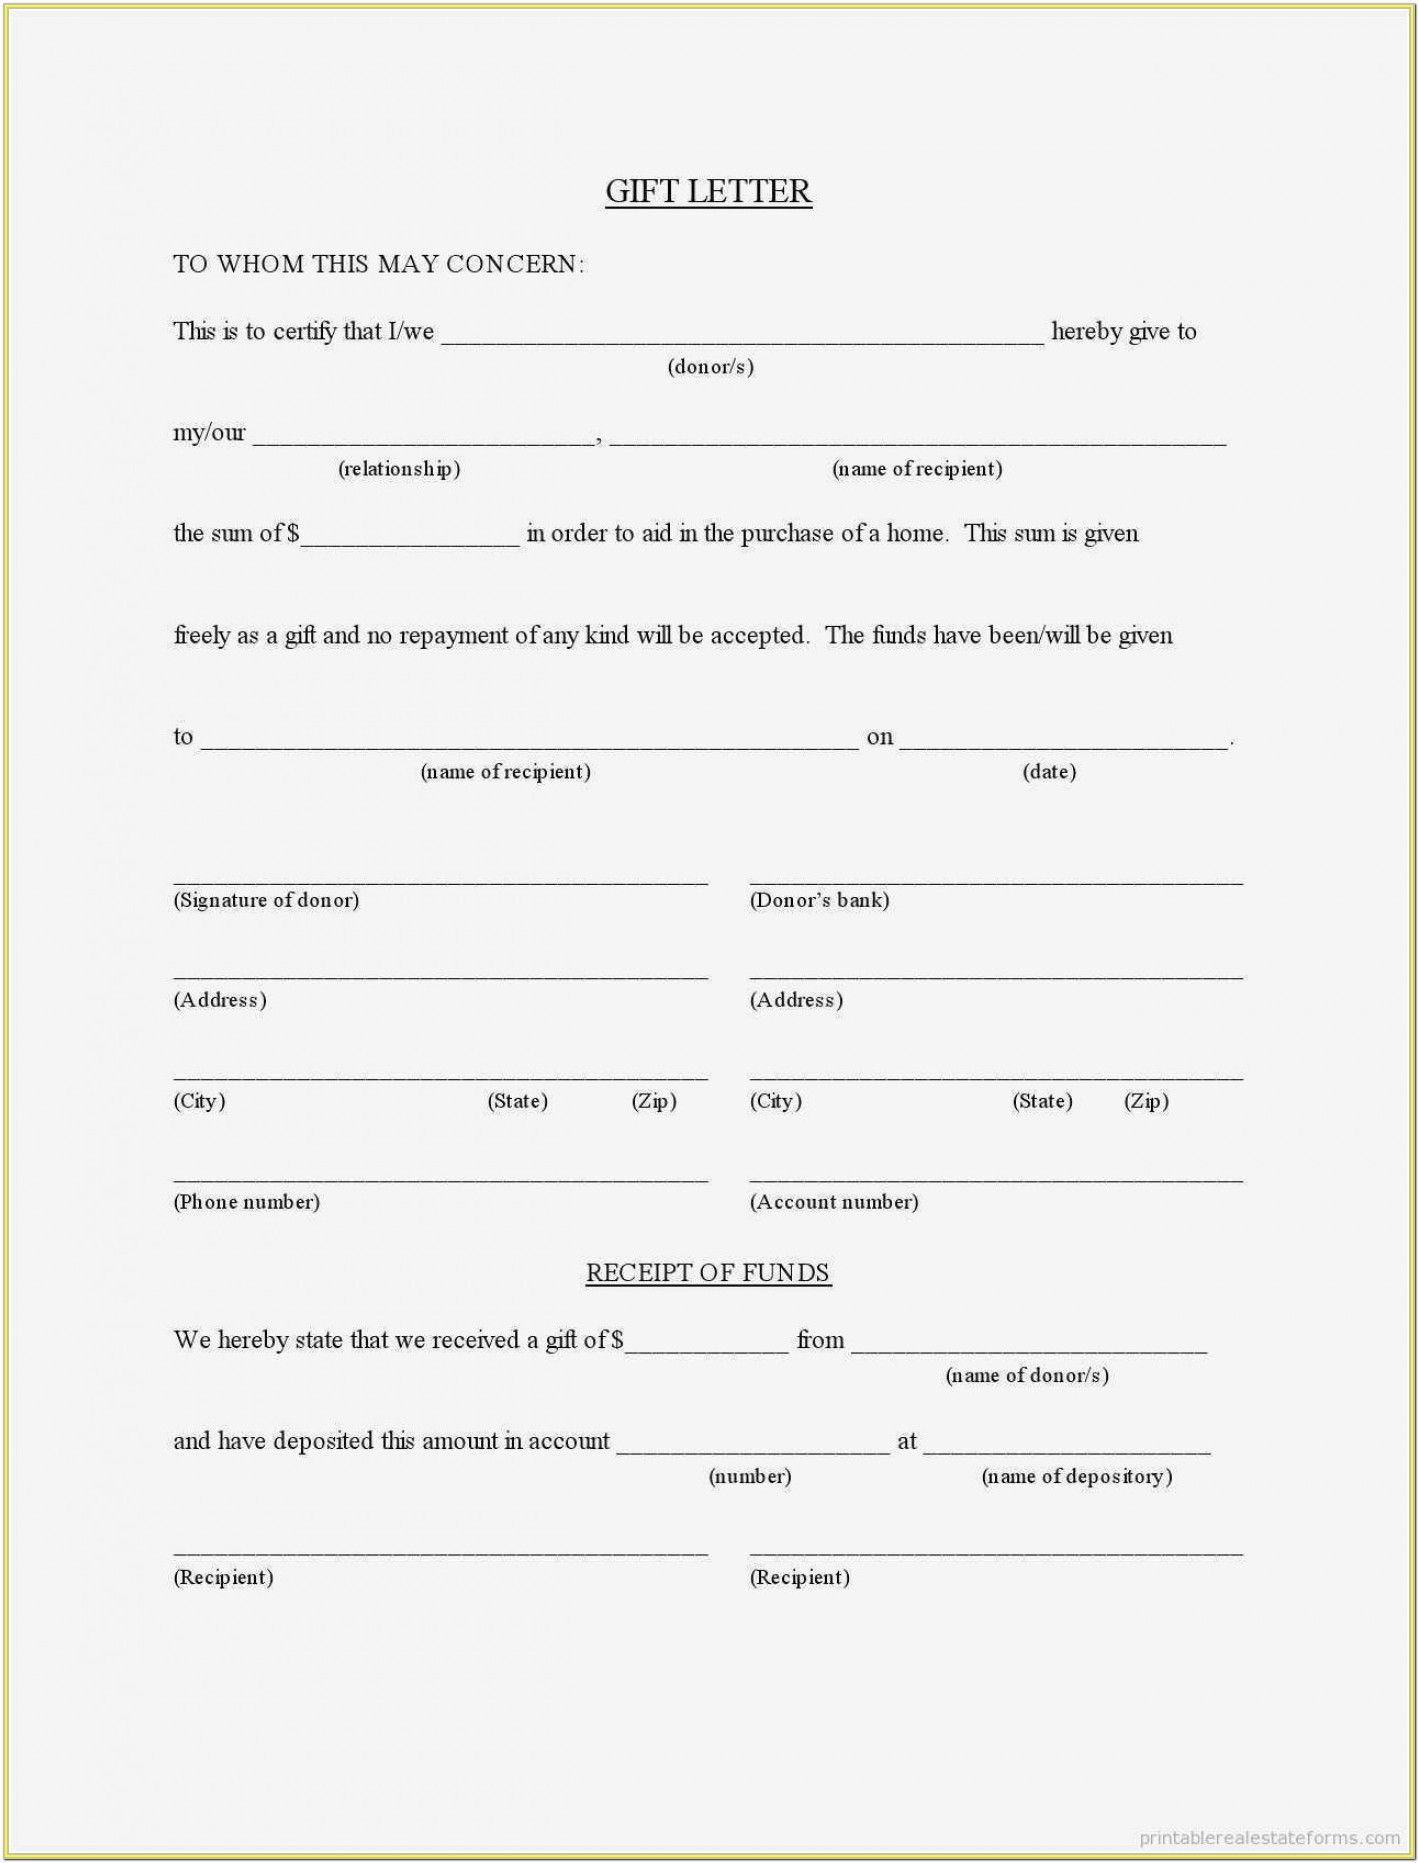 Temporary Guardianship Legal Guardianship Forms Pdf